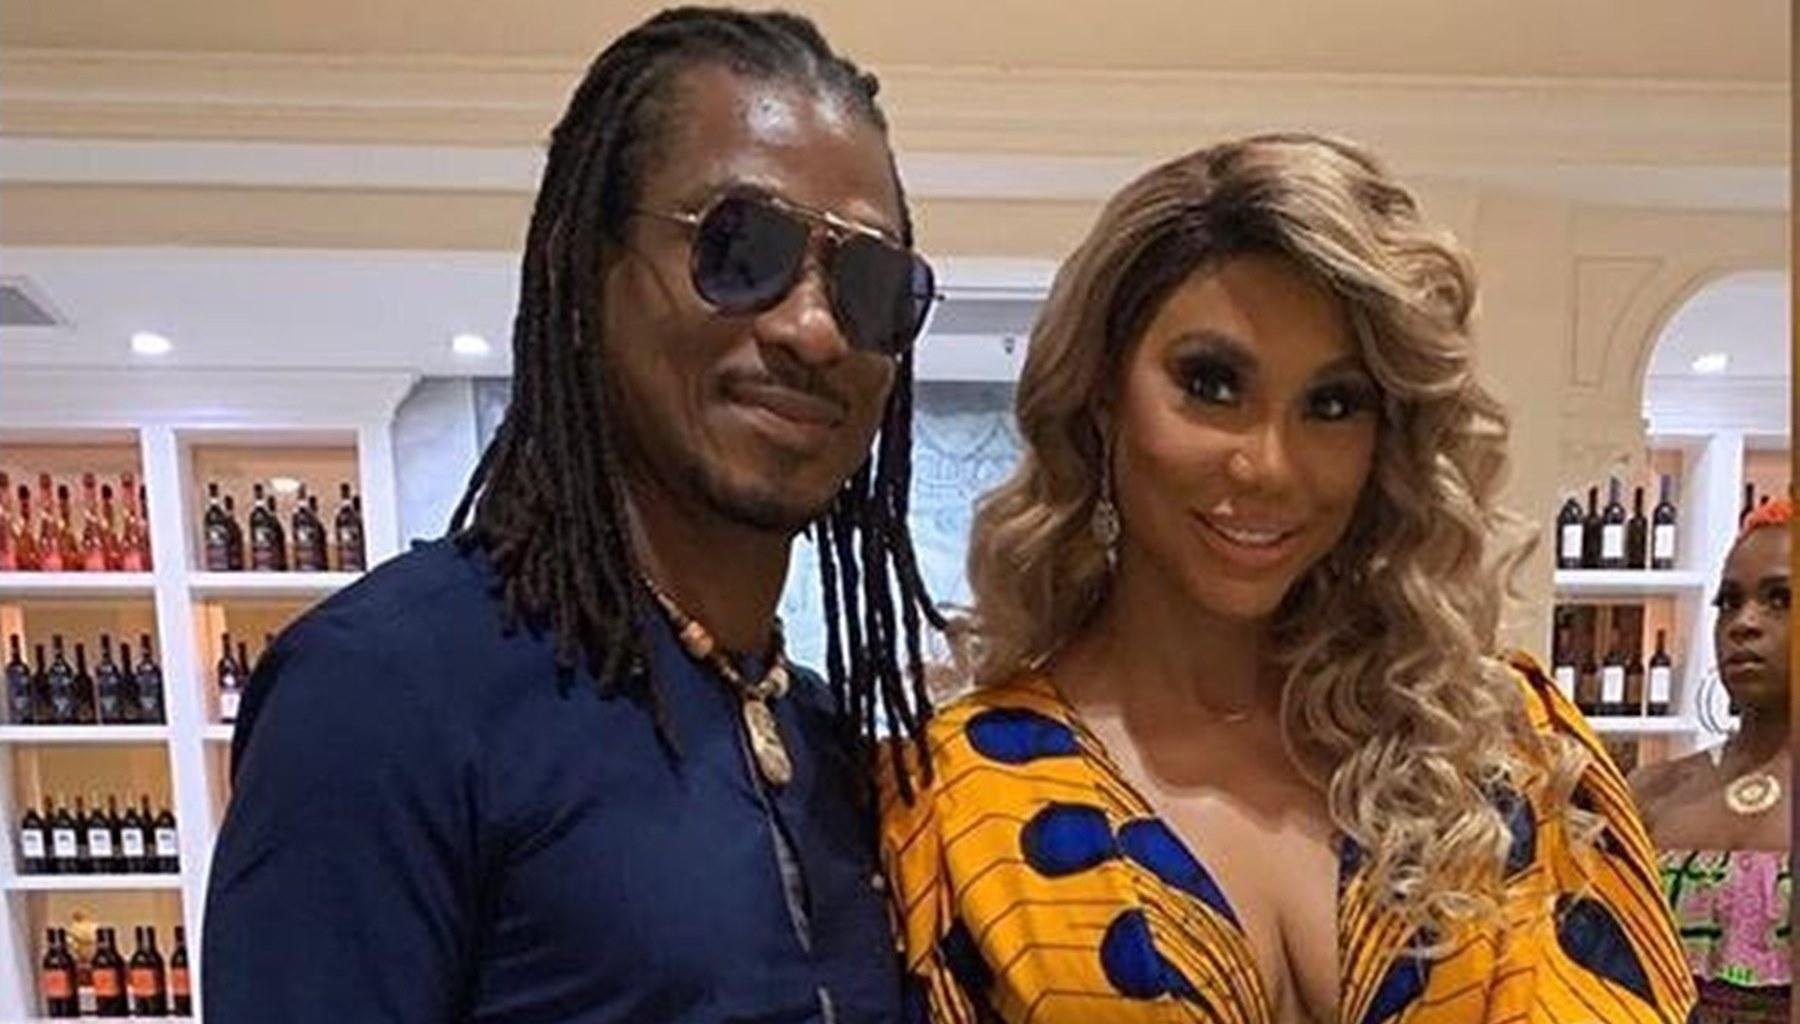 Tamar Braxton Has Fans Confused After She Deletes All Her Instagram Posts And Tweets About 'Letting It Go' -- What Is Going With David Adefeso?